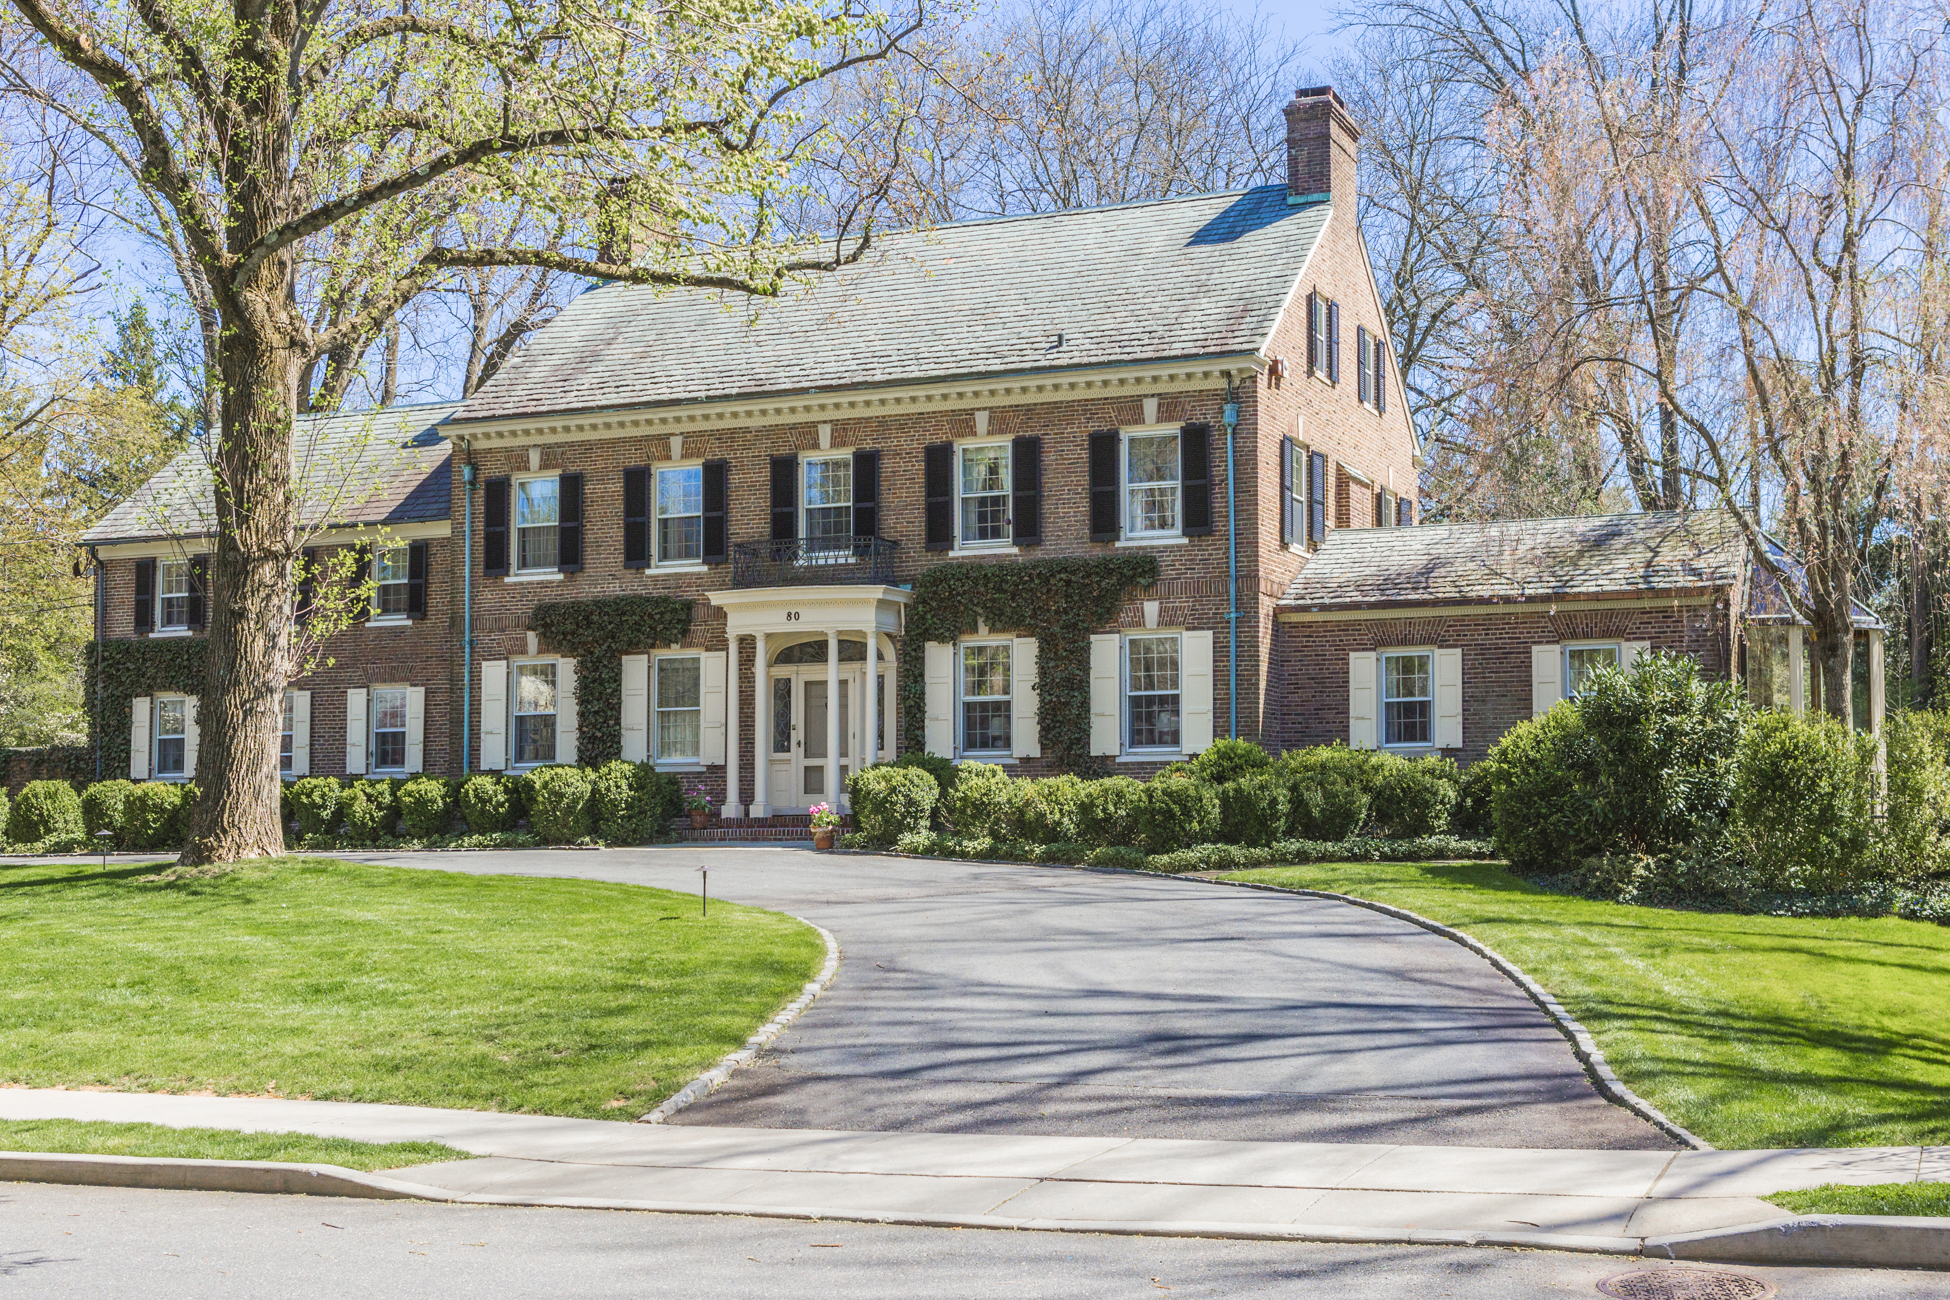 Maison unifamiliale pour l Vente à A Warm and Noble Presence in the Western Section 80 Westcott Road Princeton, New Jersey 08540 États-Unis